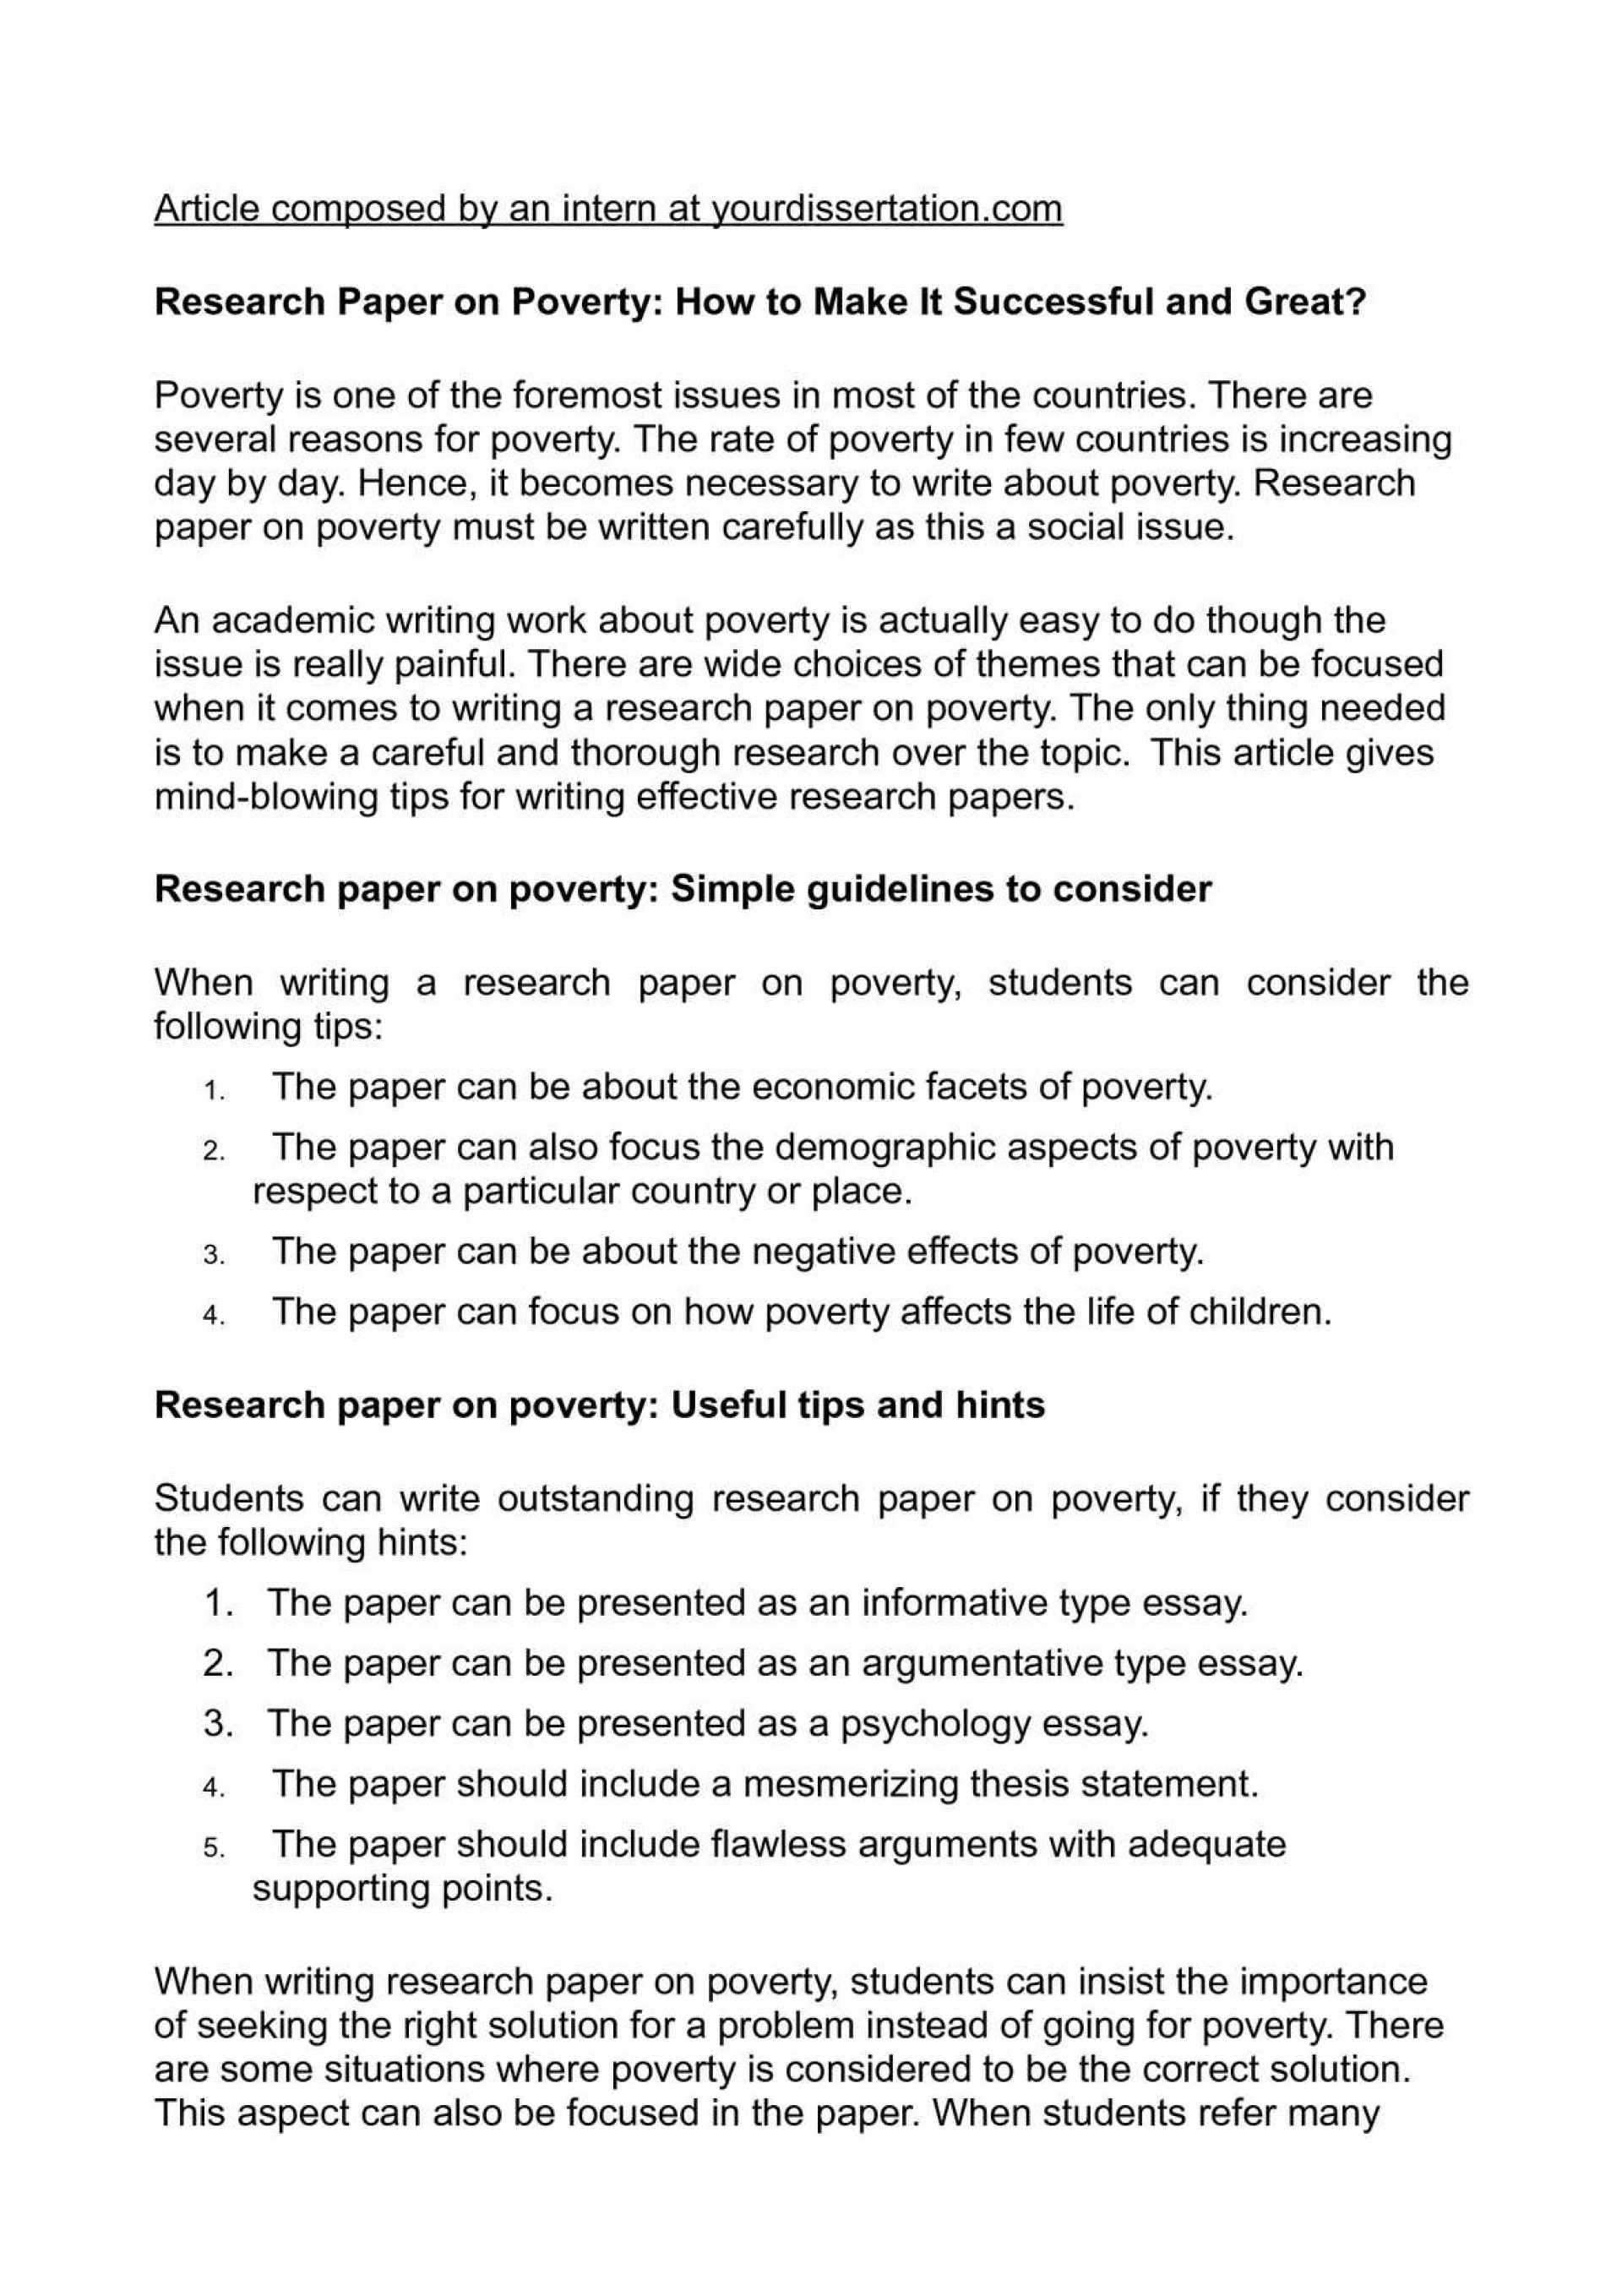 006 Can I Write Research Paper In One Day Fascinating A 6 Page How To Good 1920